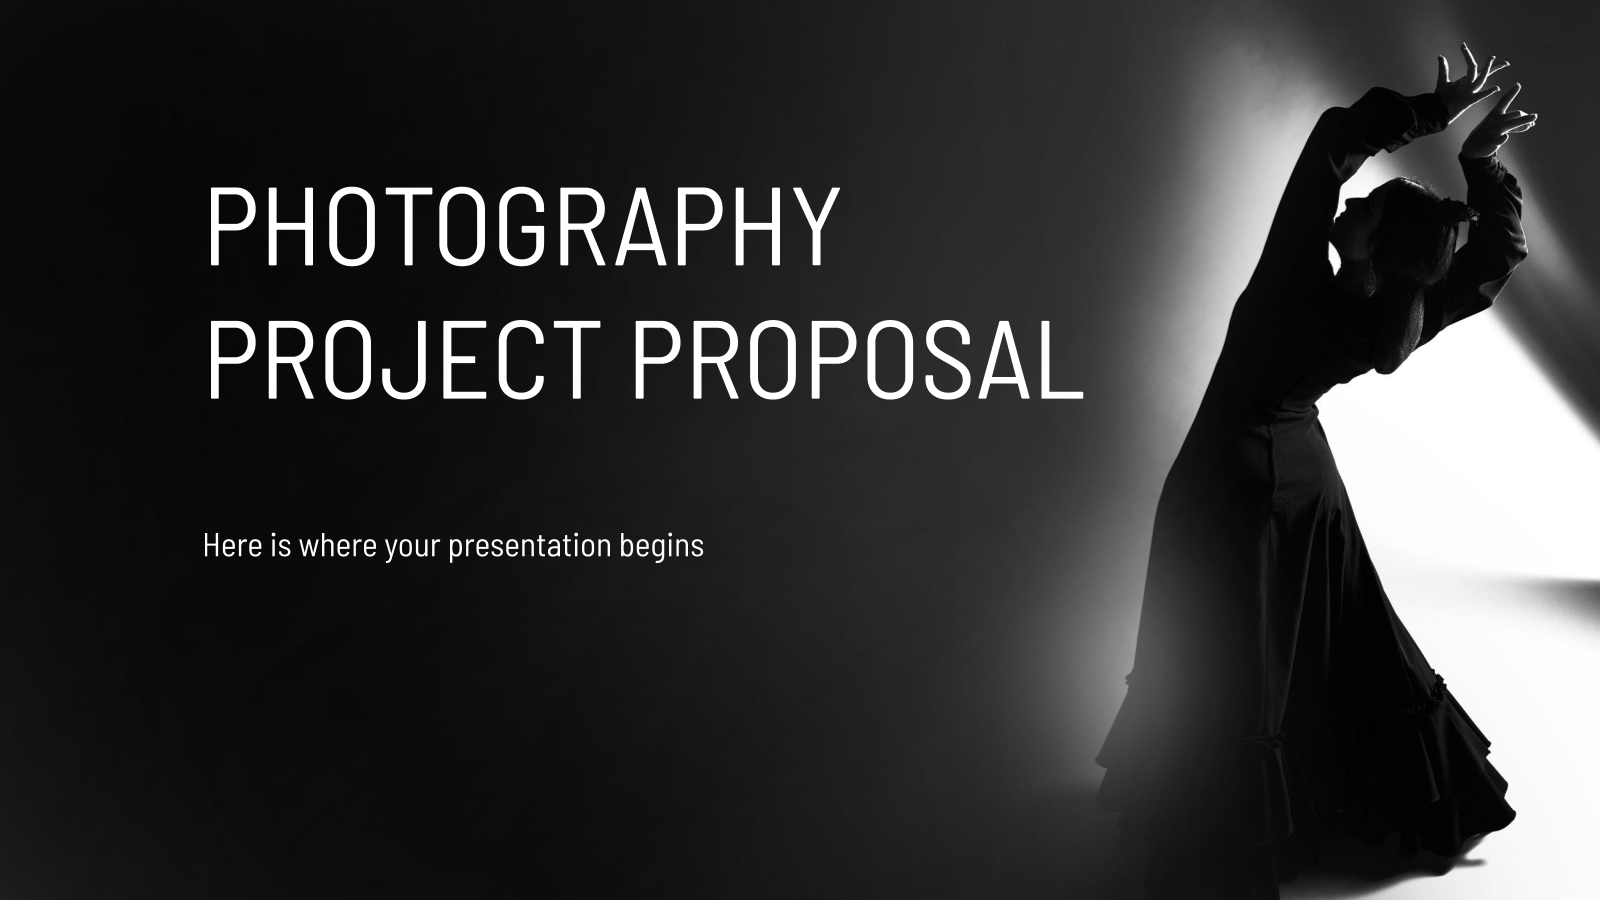 Photography Project Proposal presentation template